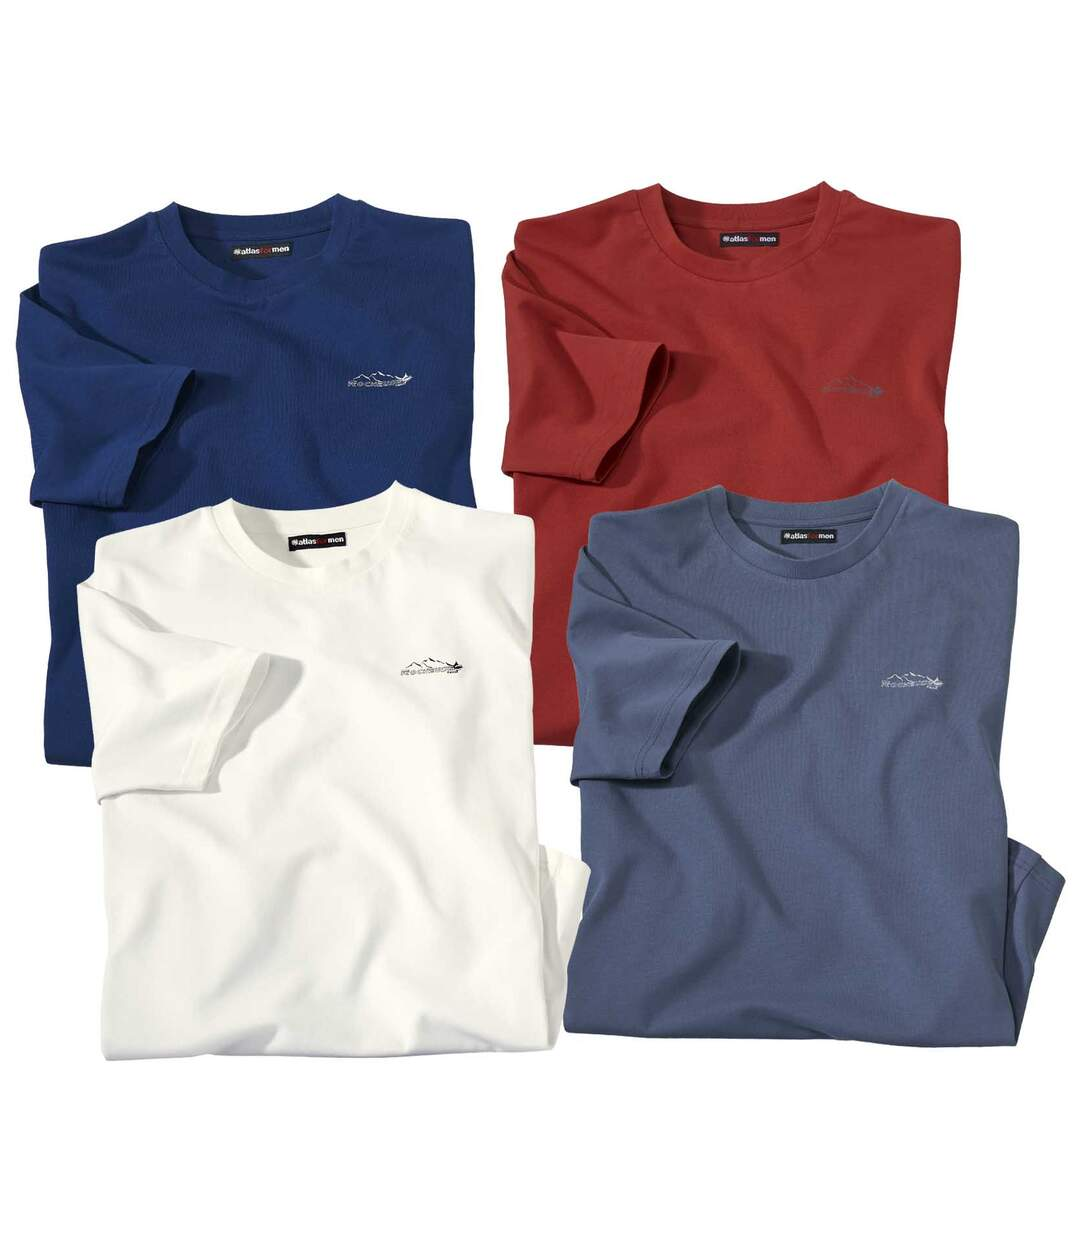 4er-Pack T-Shirts Rocheuses(R)